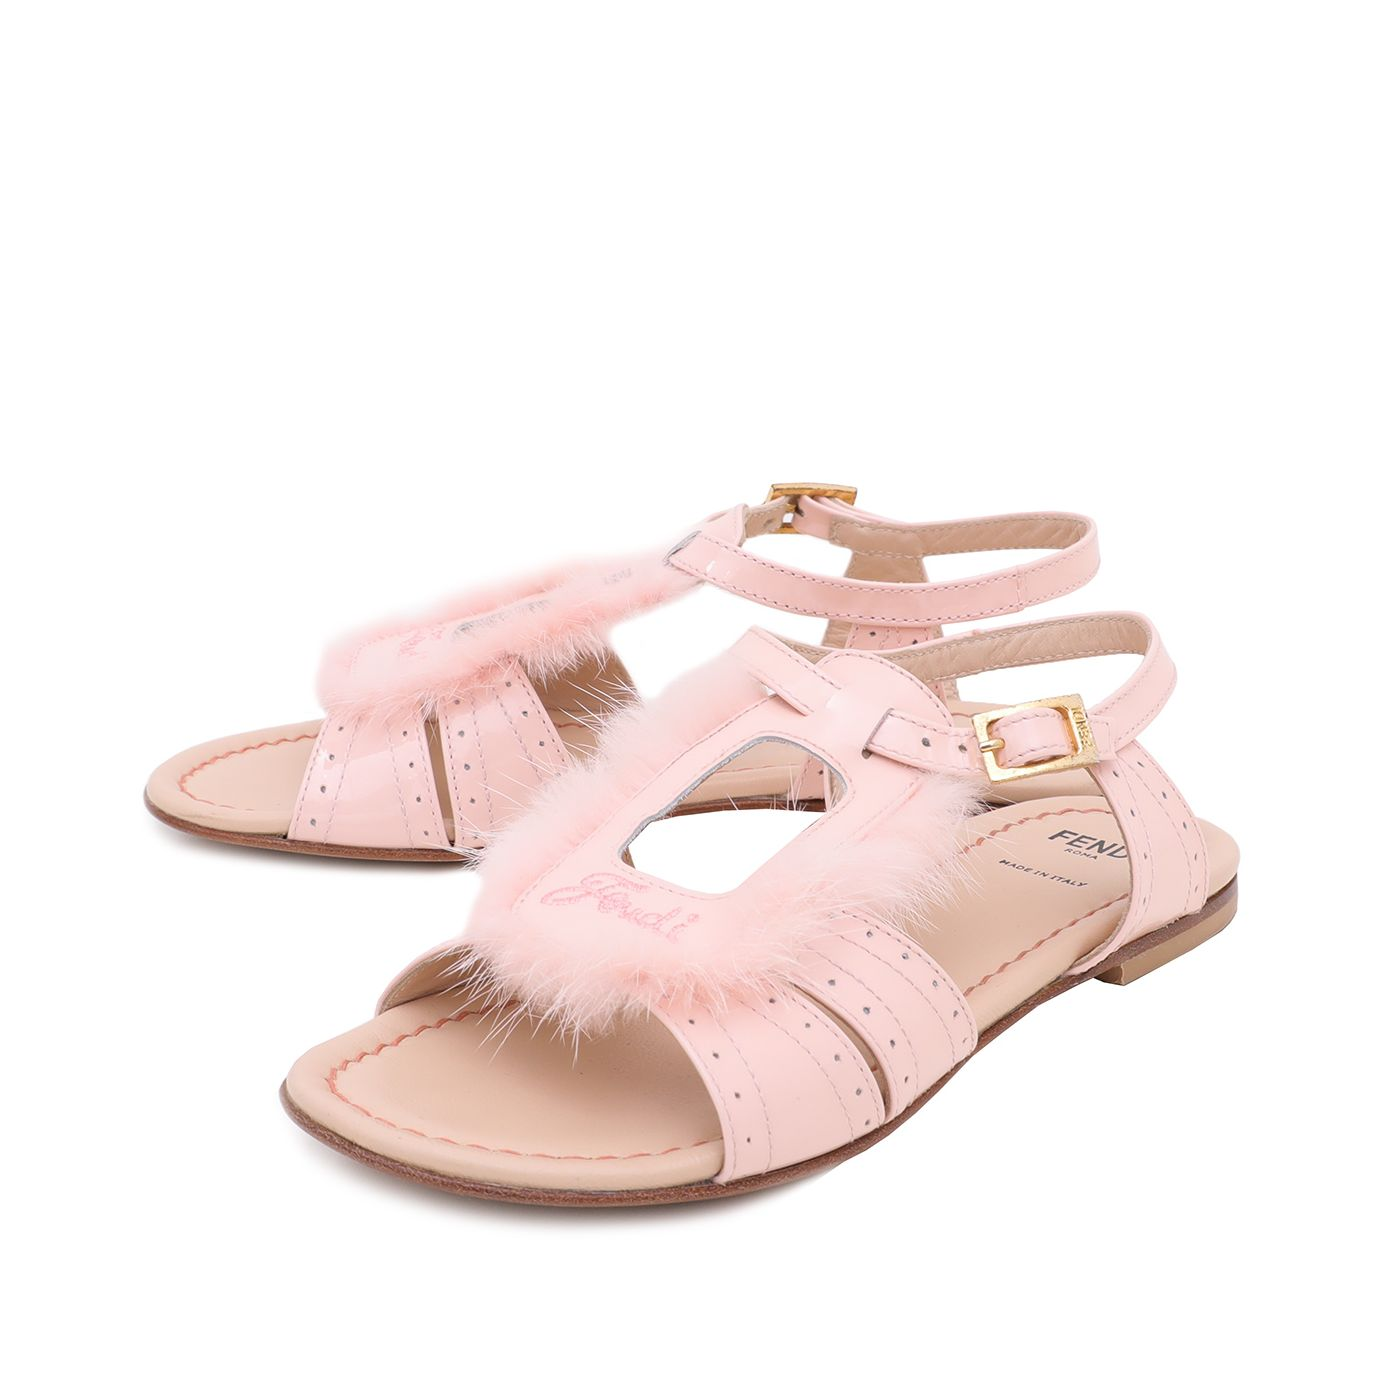 Fendi Pink Fur Kids Sandals 35